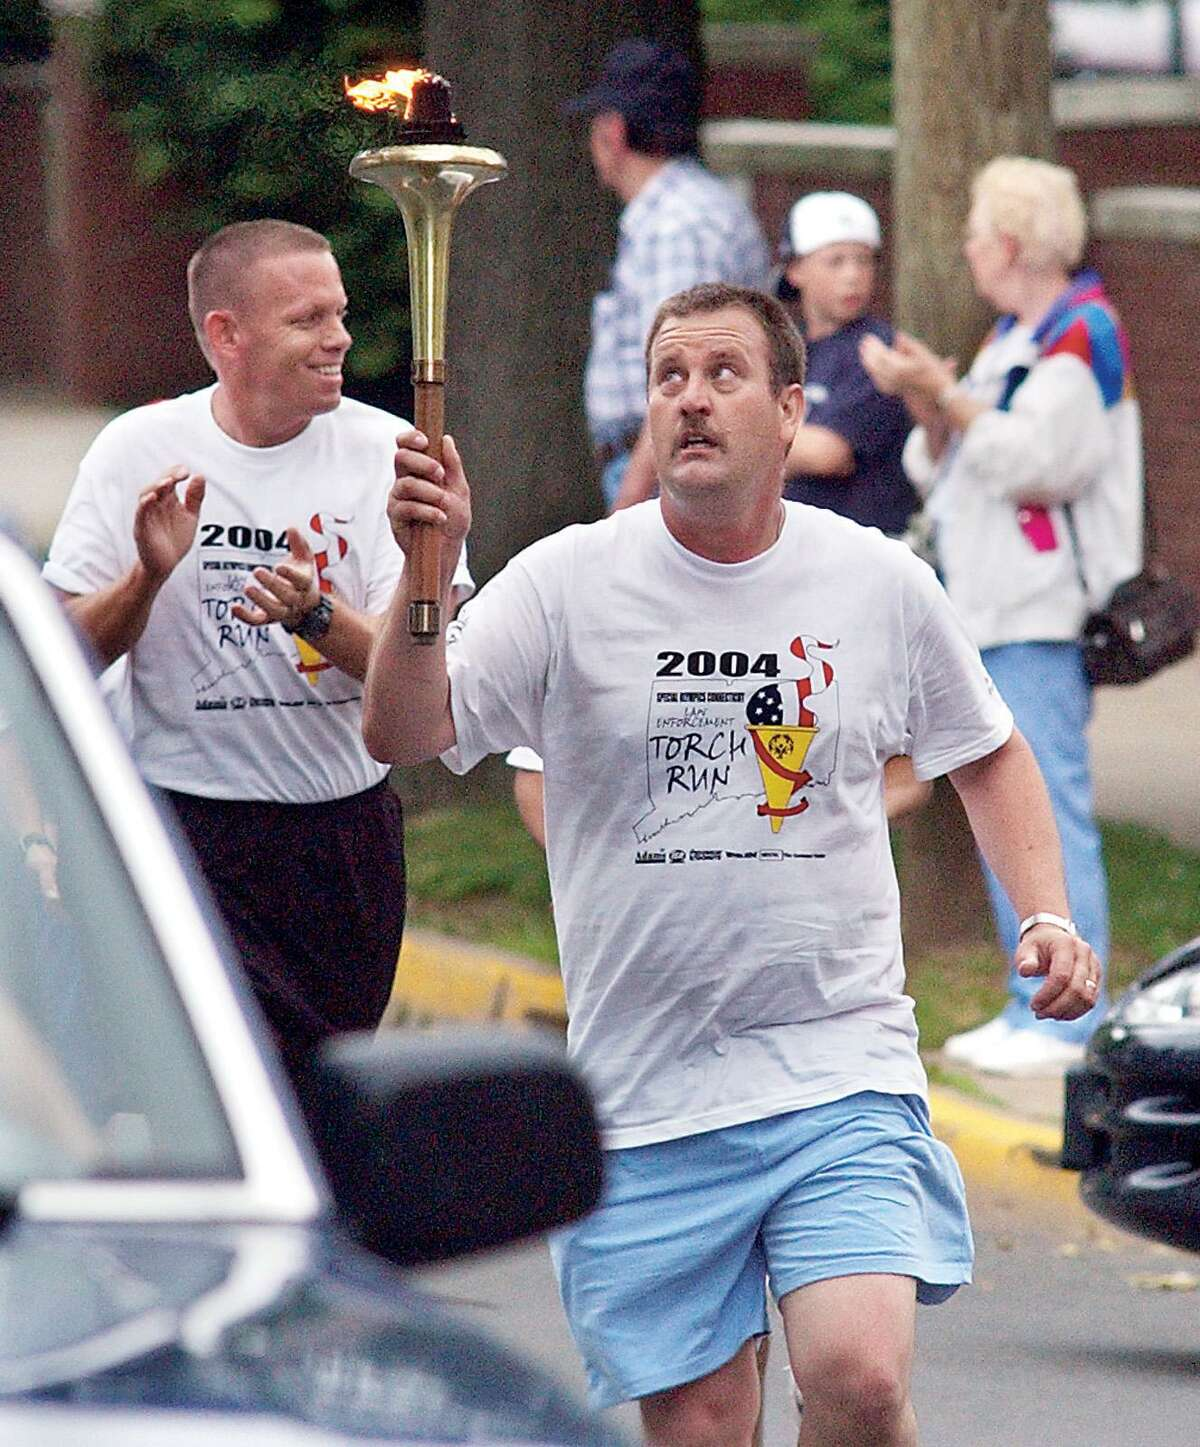 In this file photo, in Middletown - the 2004 Law Enforcement Torch Run.